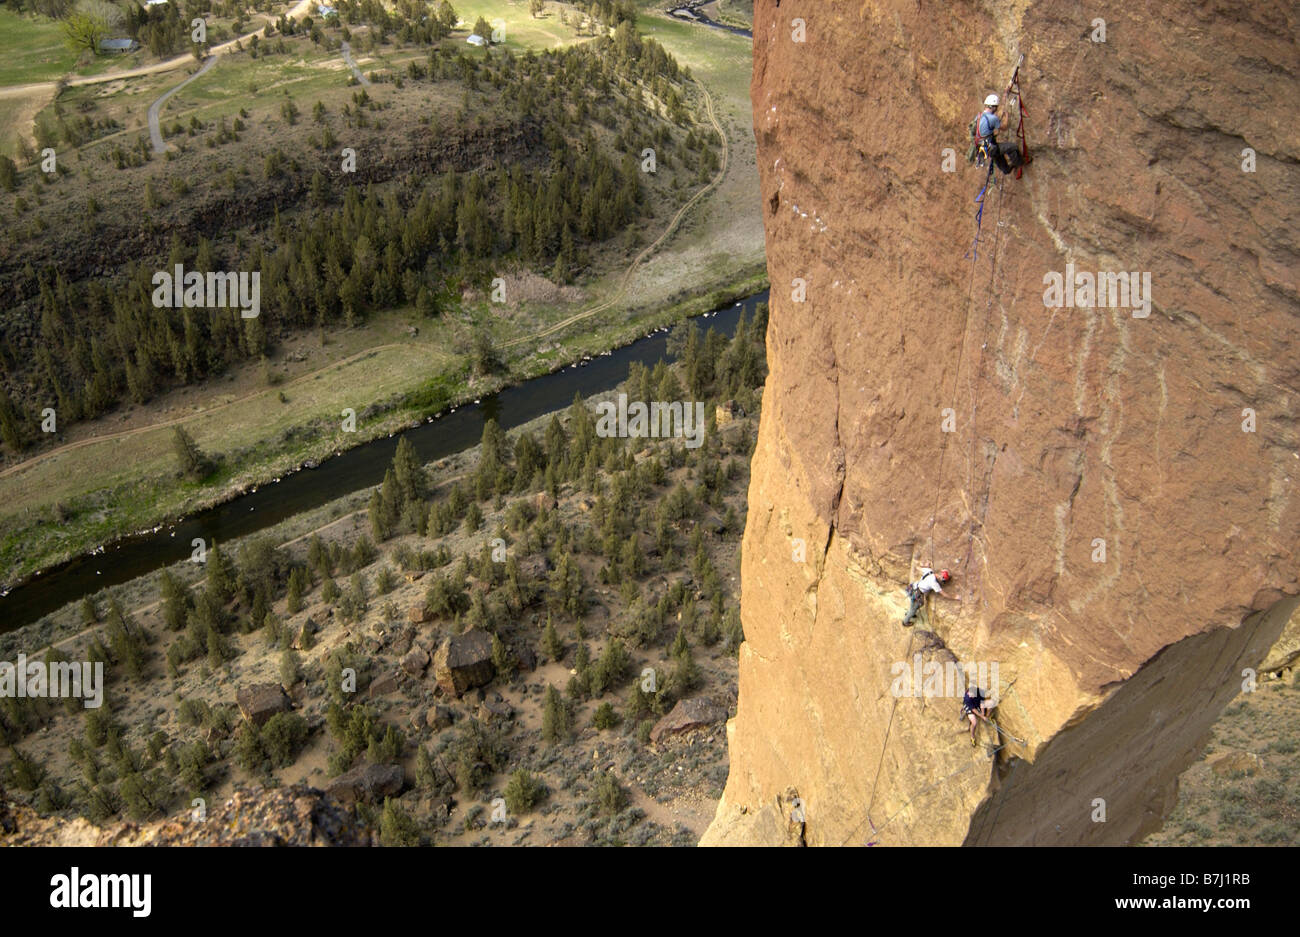 A group of men rock climbing on a free standing tower of rock., Smith Rock State Park, Terrebonne, Oregon, USA - Stock Image